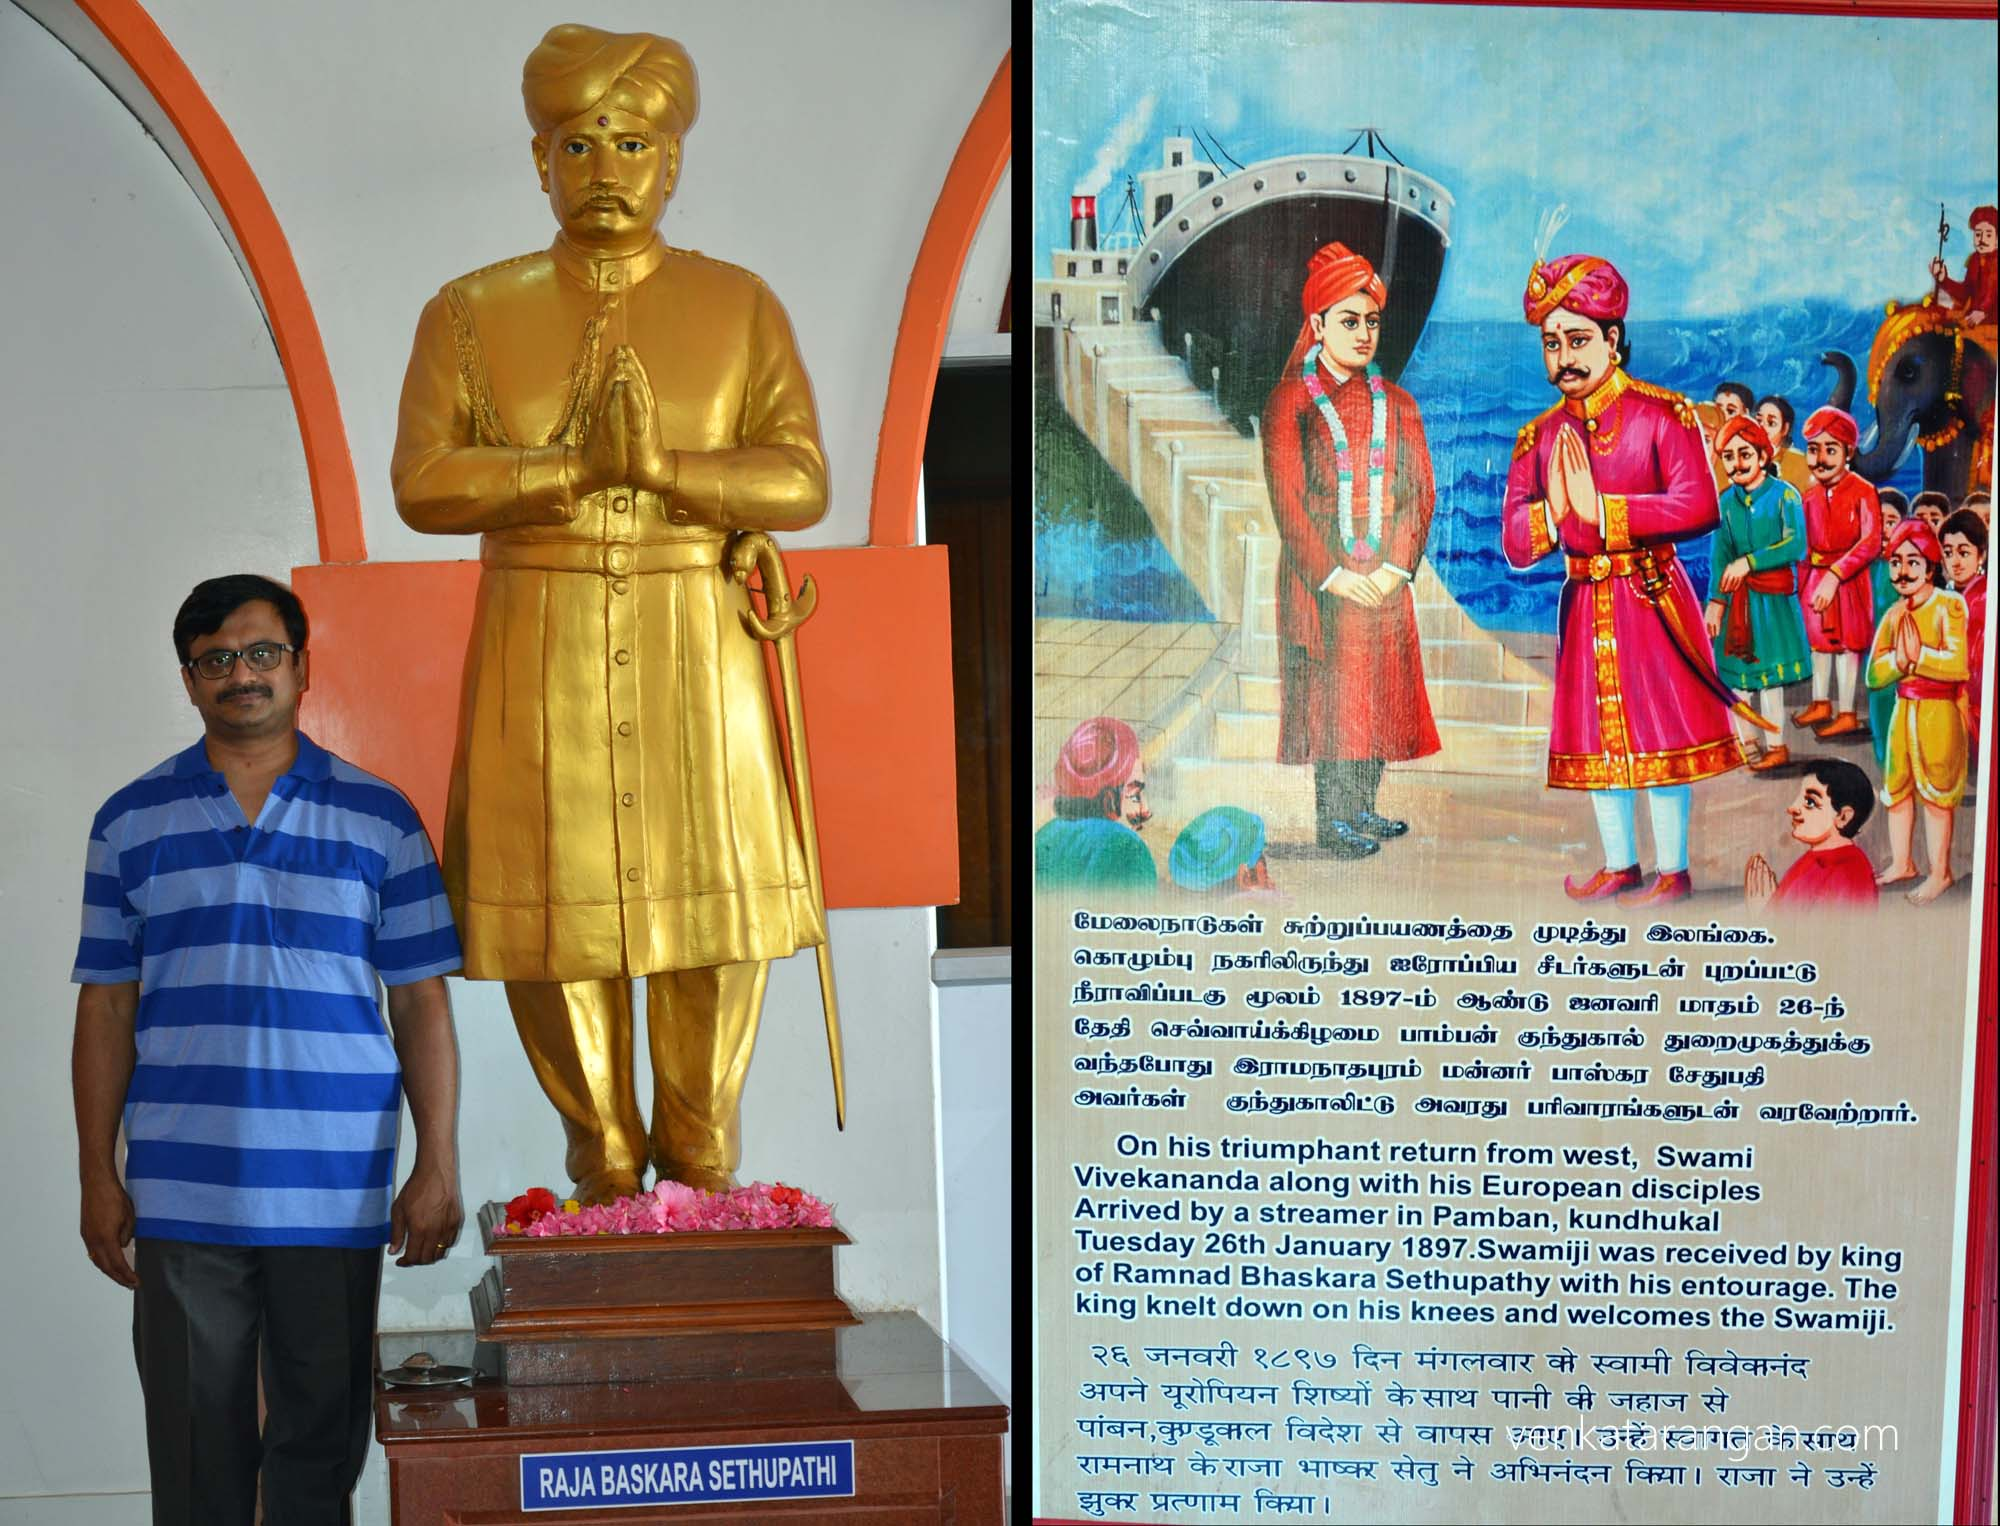 On his return from west, Swami Vivekananda was received by King of Ramnad Bhaskara Sethupathy - 26 January 1897